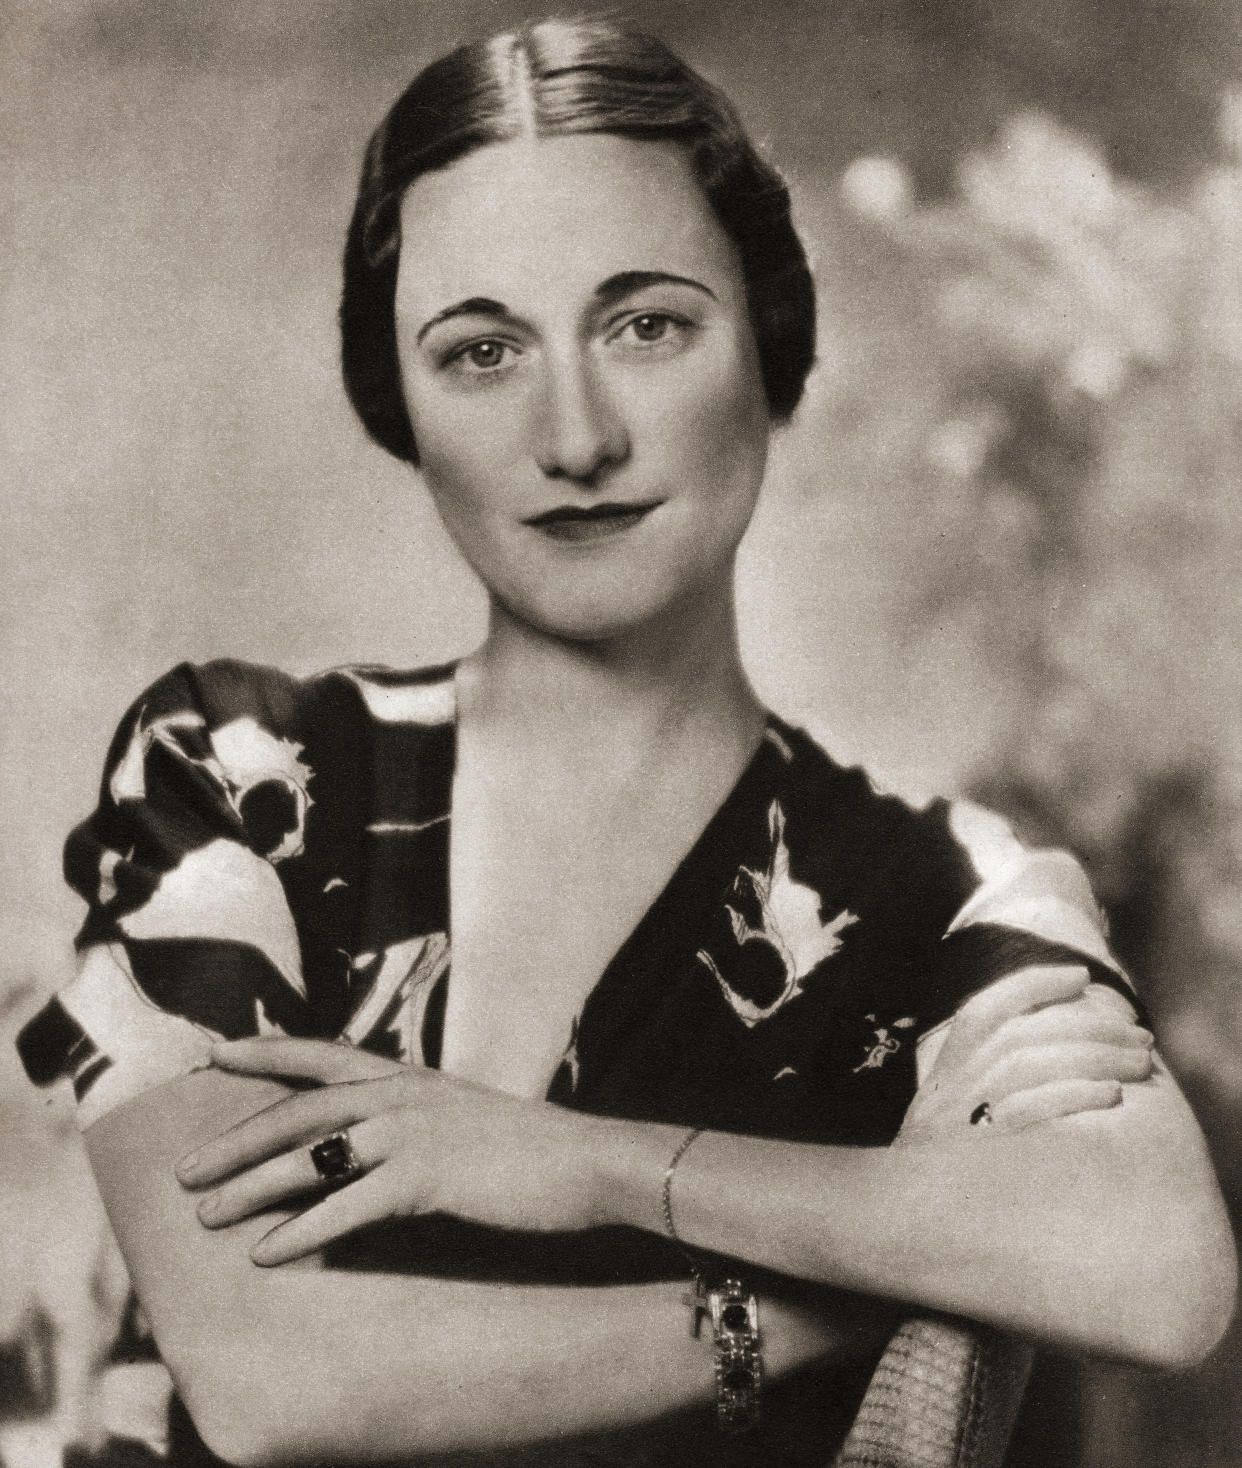 Wallis Simpson, later the Duchess of Windsor, born Bessie Wallis Warfield, 1896 – 1986. American socialite married to Prince Edward, Duke of Windsor, formerly King Edward VIII of the United Kingdom. From the Coronation Souvenir Book published 1937. (Photo by: Universal History Archive/Universal Images Group via Getty Images)